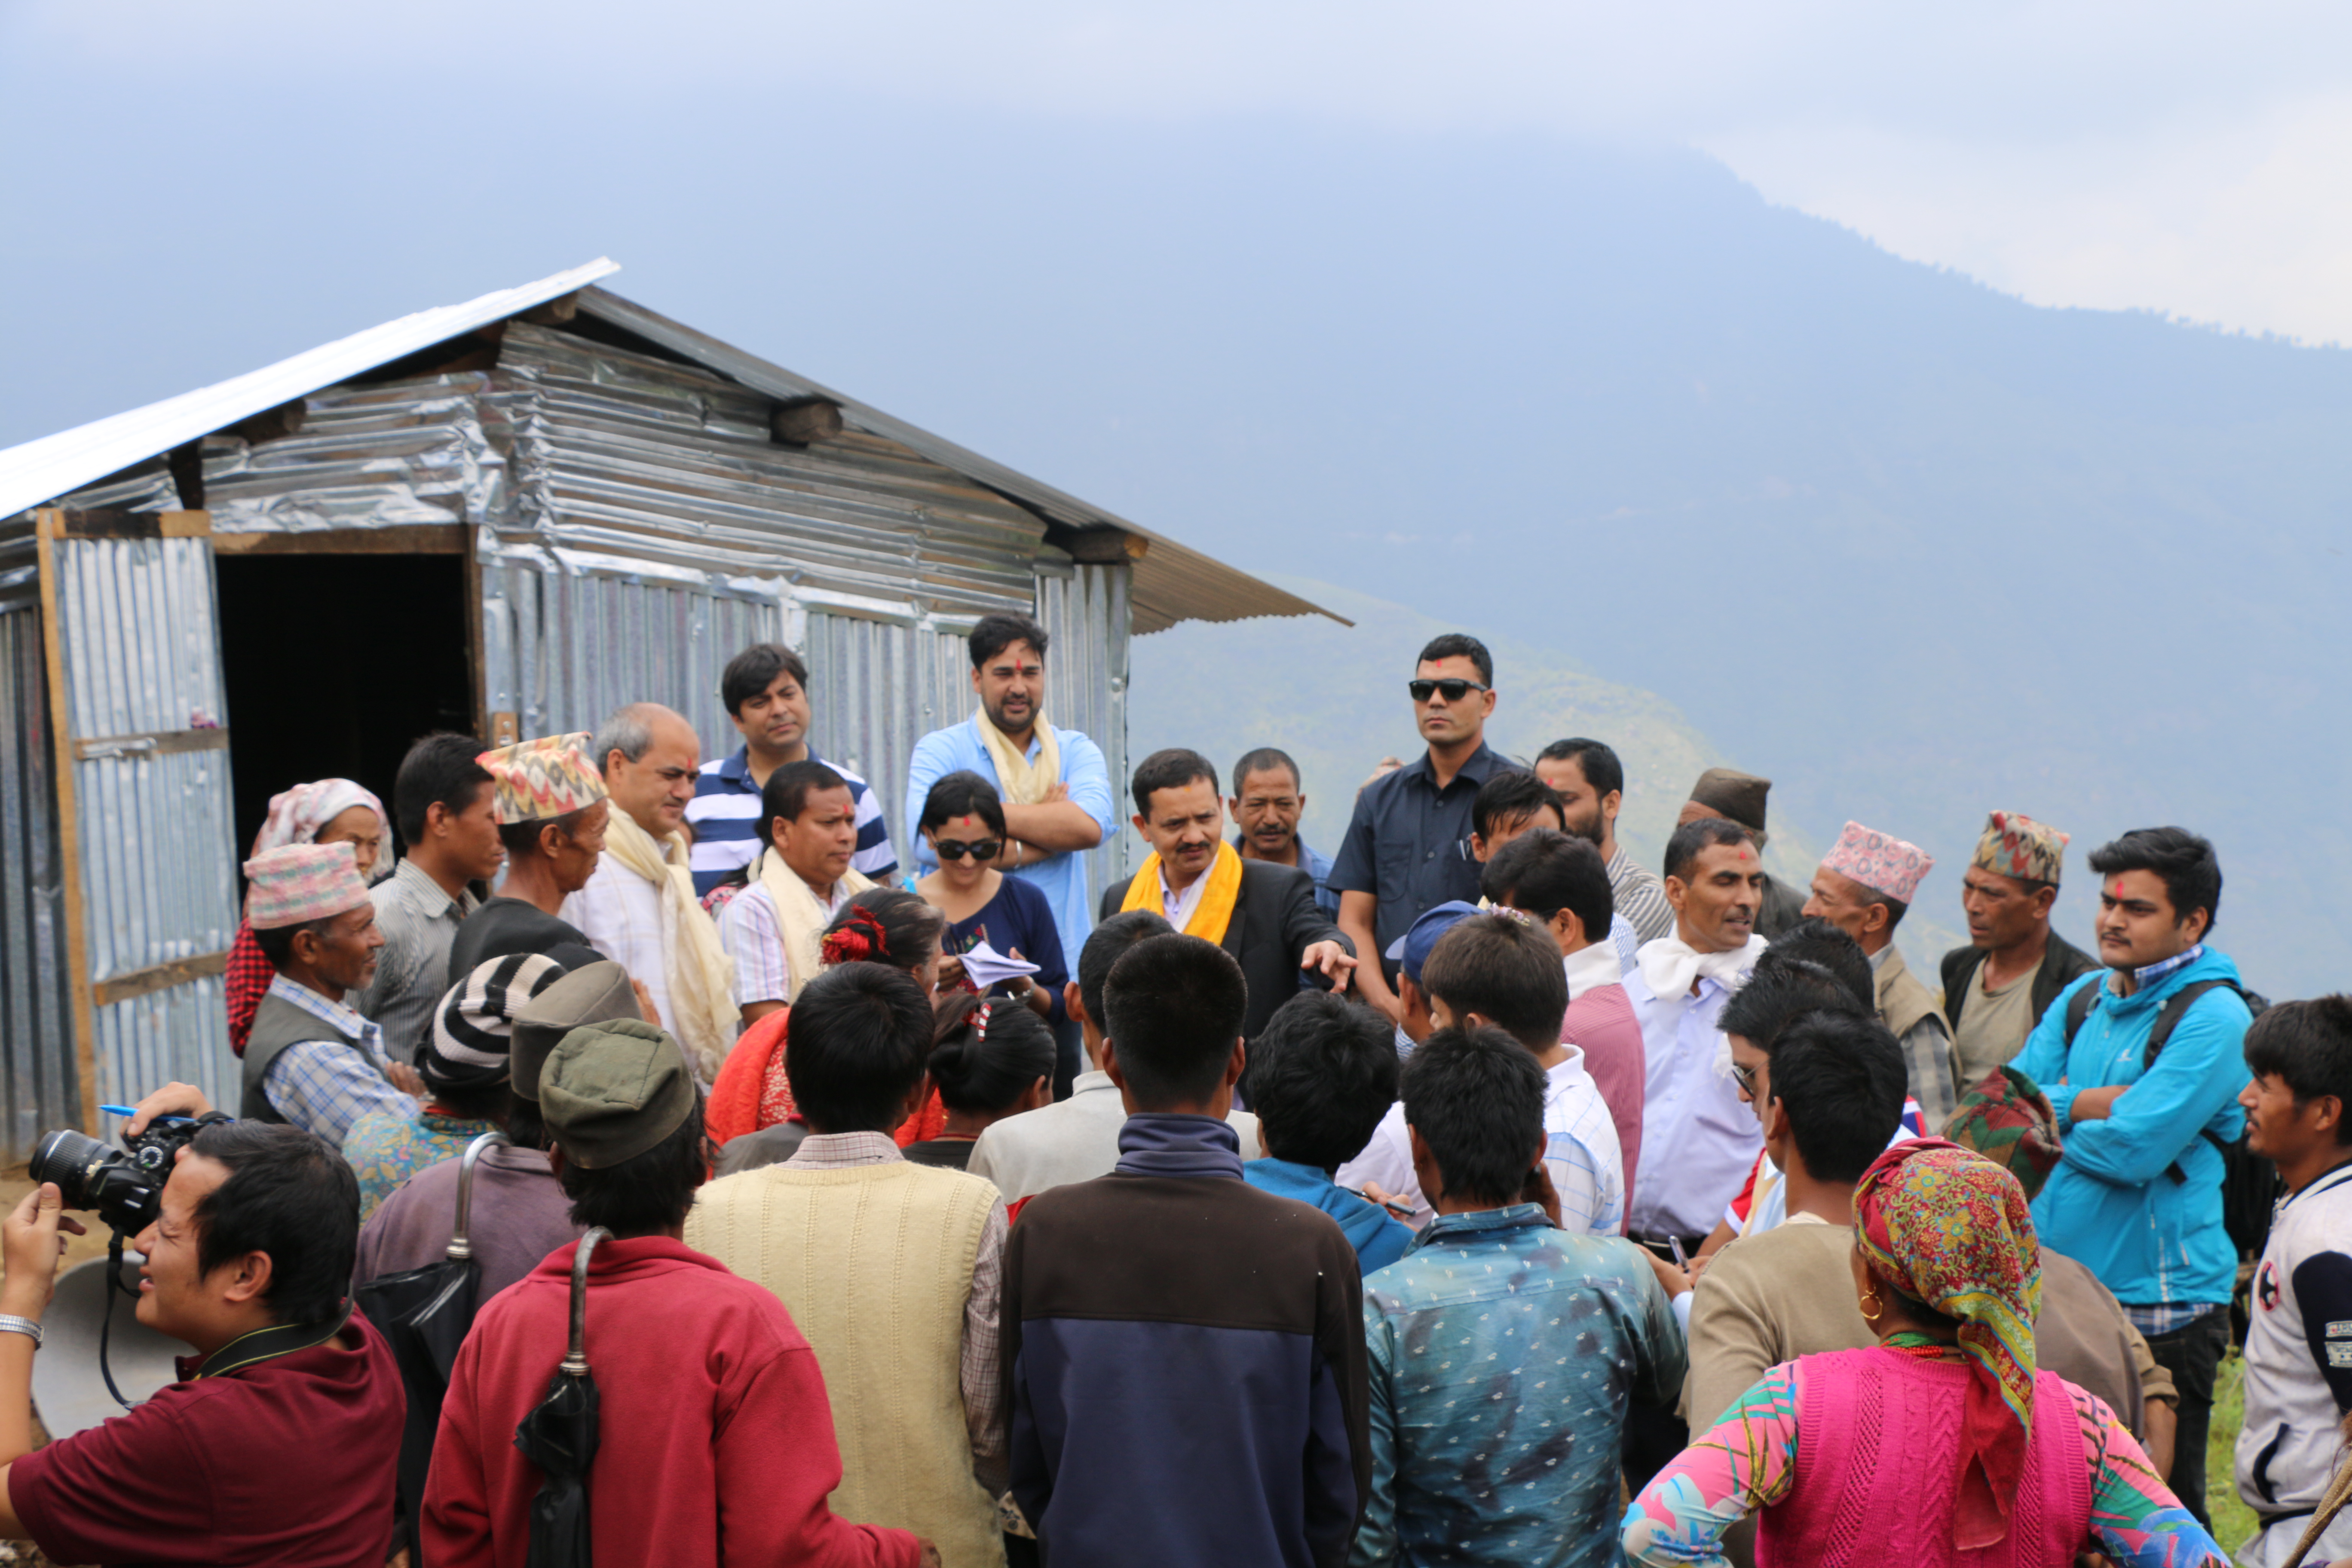 Govinda Pokharel (wearing yellow scarf), Chief Executive Officer of the National Reconstruction Authority interacting with the people displaced by earthquake in Selang, Sindhupalchowk